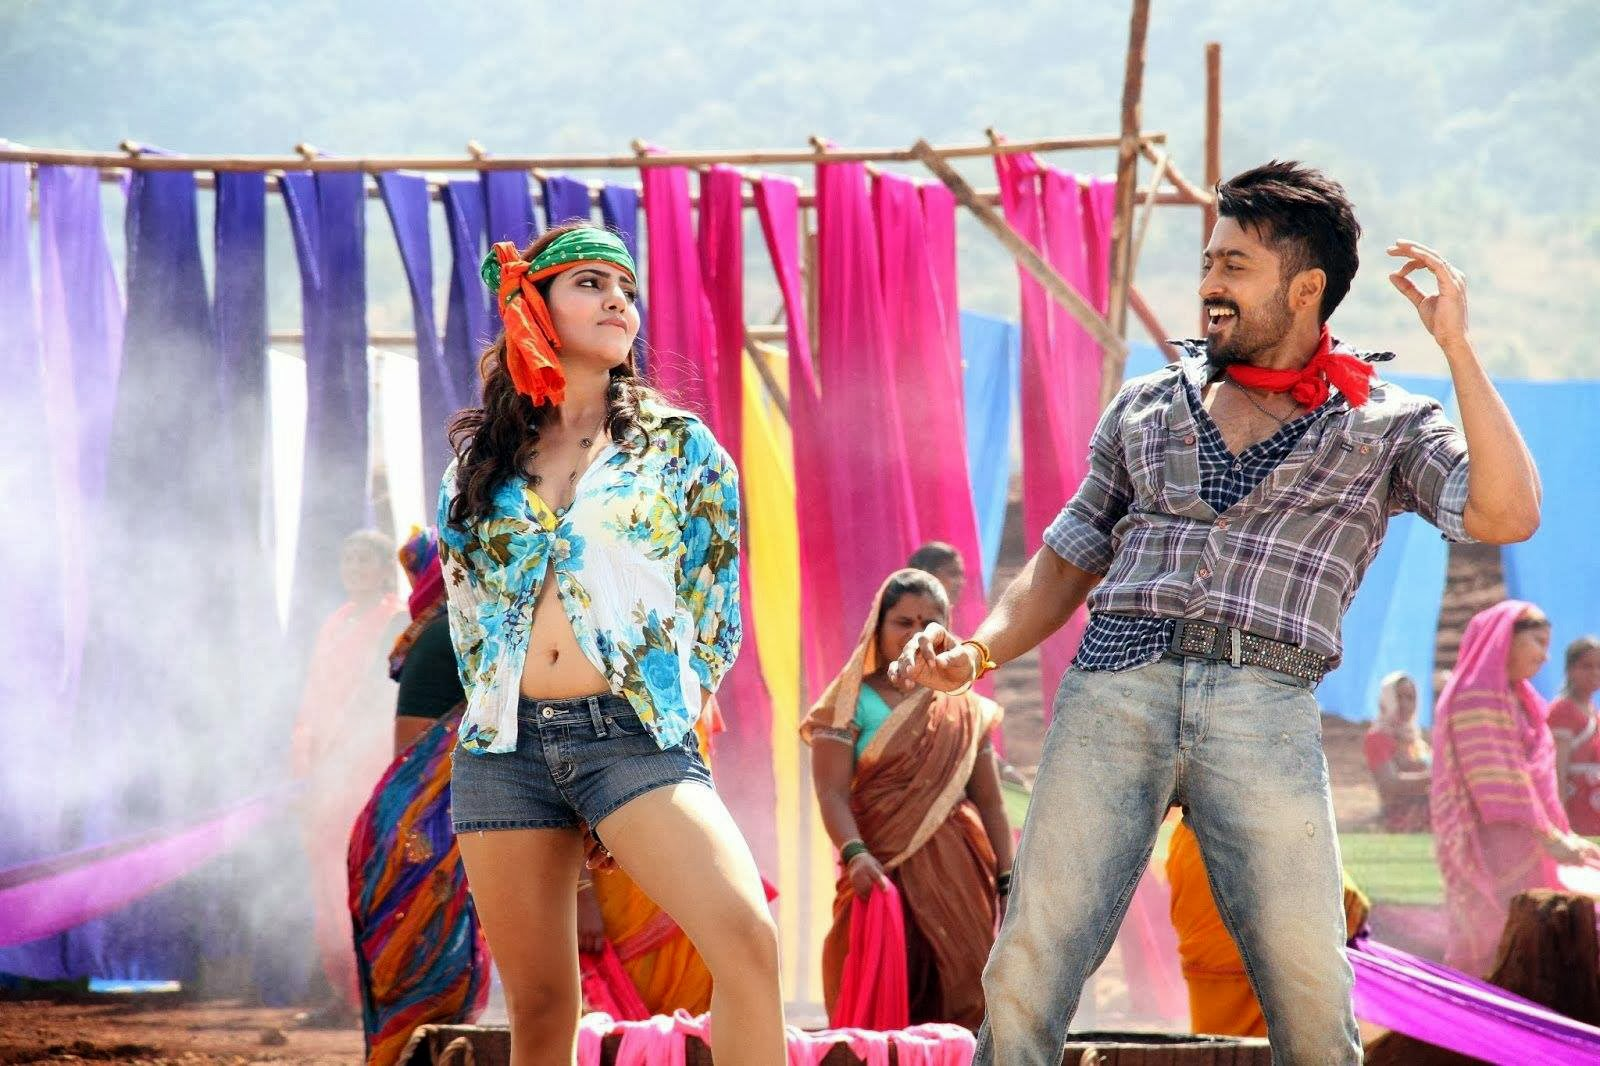 Surya latest movie songs new ethiopian movie free sodakku surya new movie songs is popular free mp3 you can download or play sodakku surya new movie songs with best mp3 quality online streaming on mp3 altavistaventures Gallery